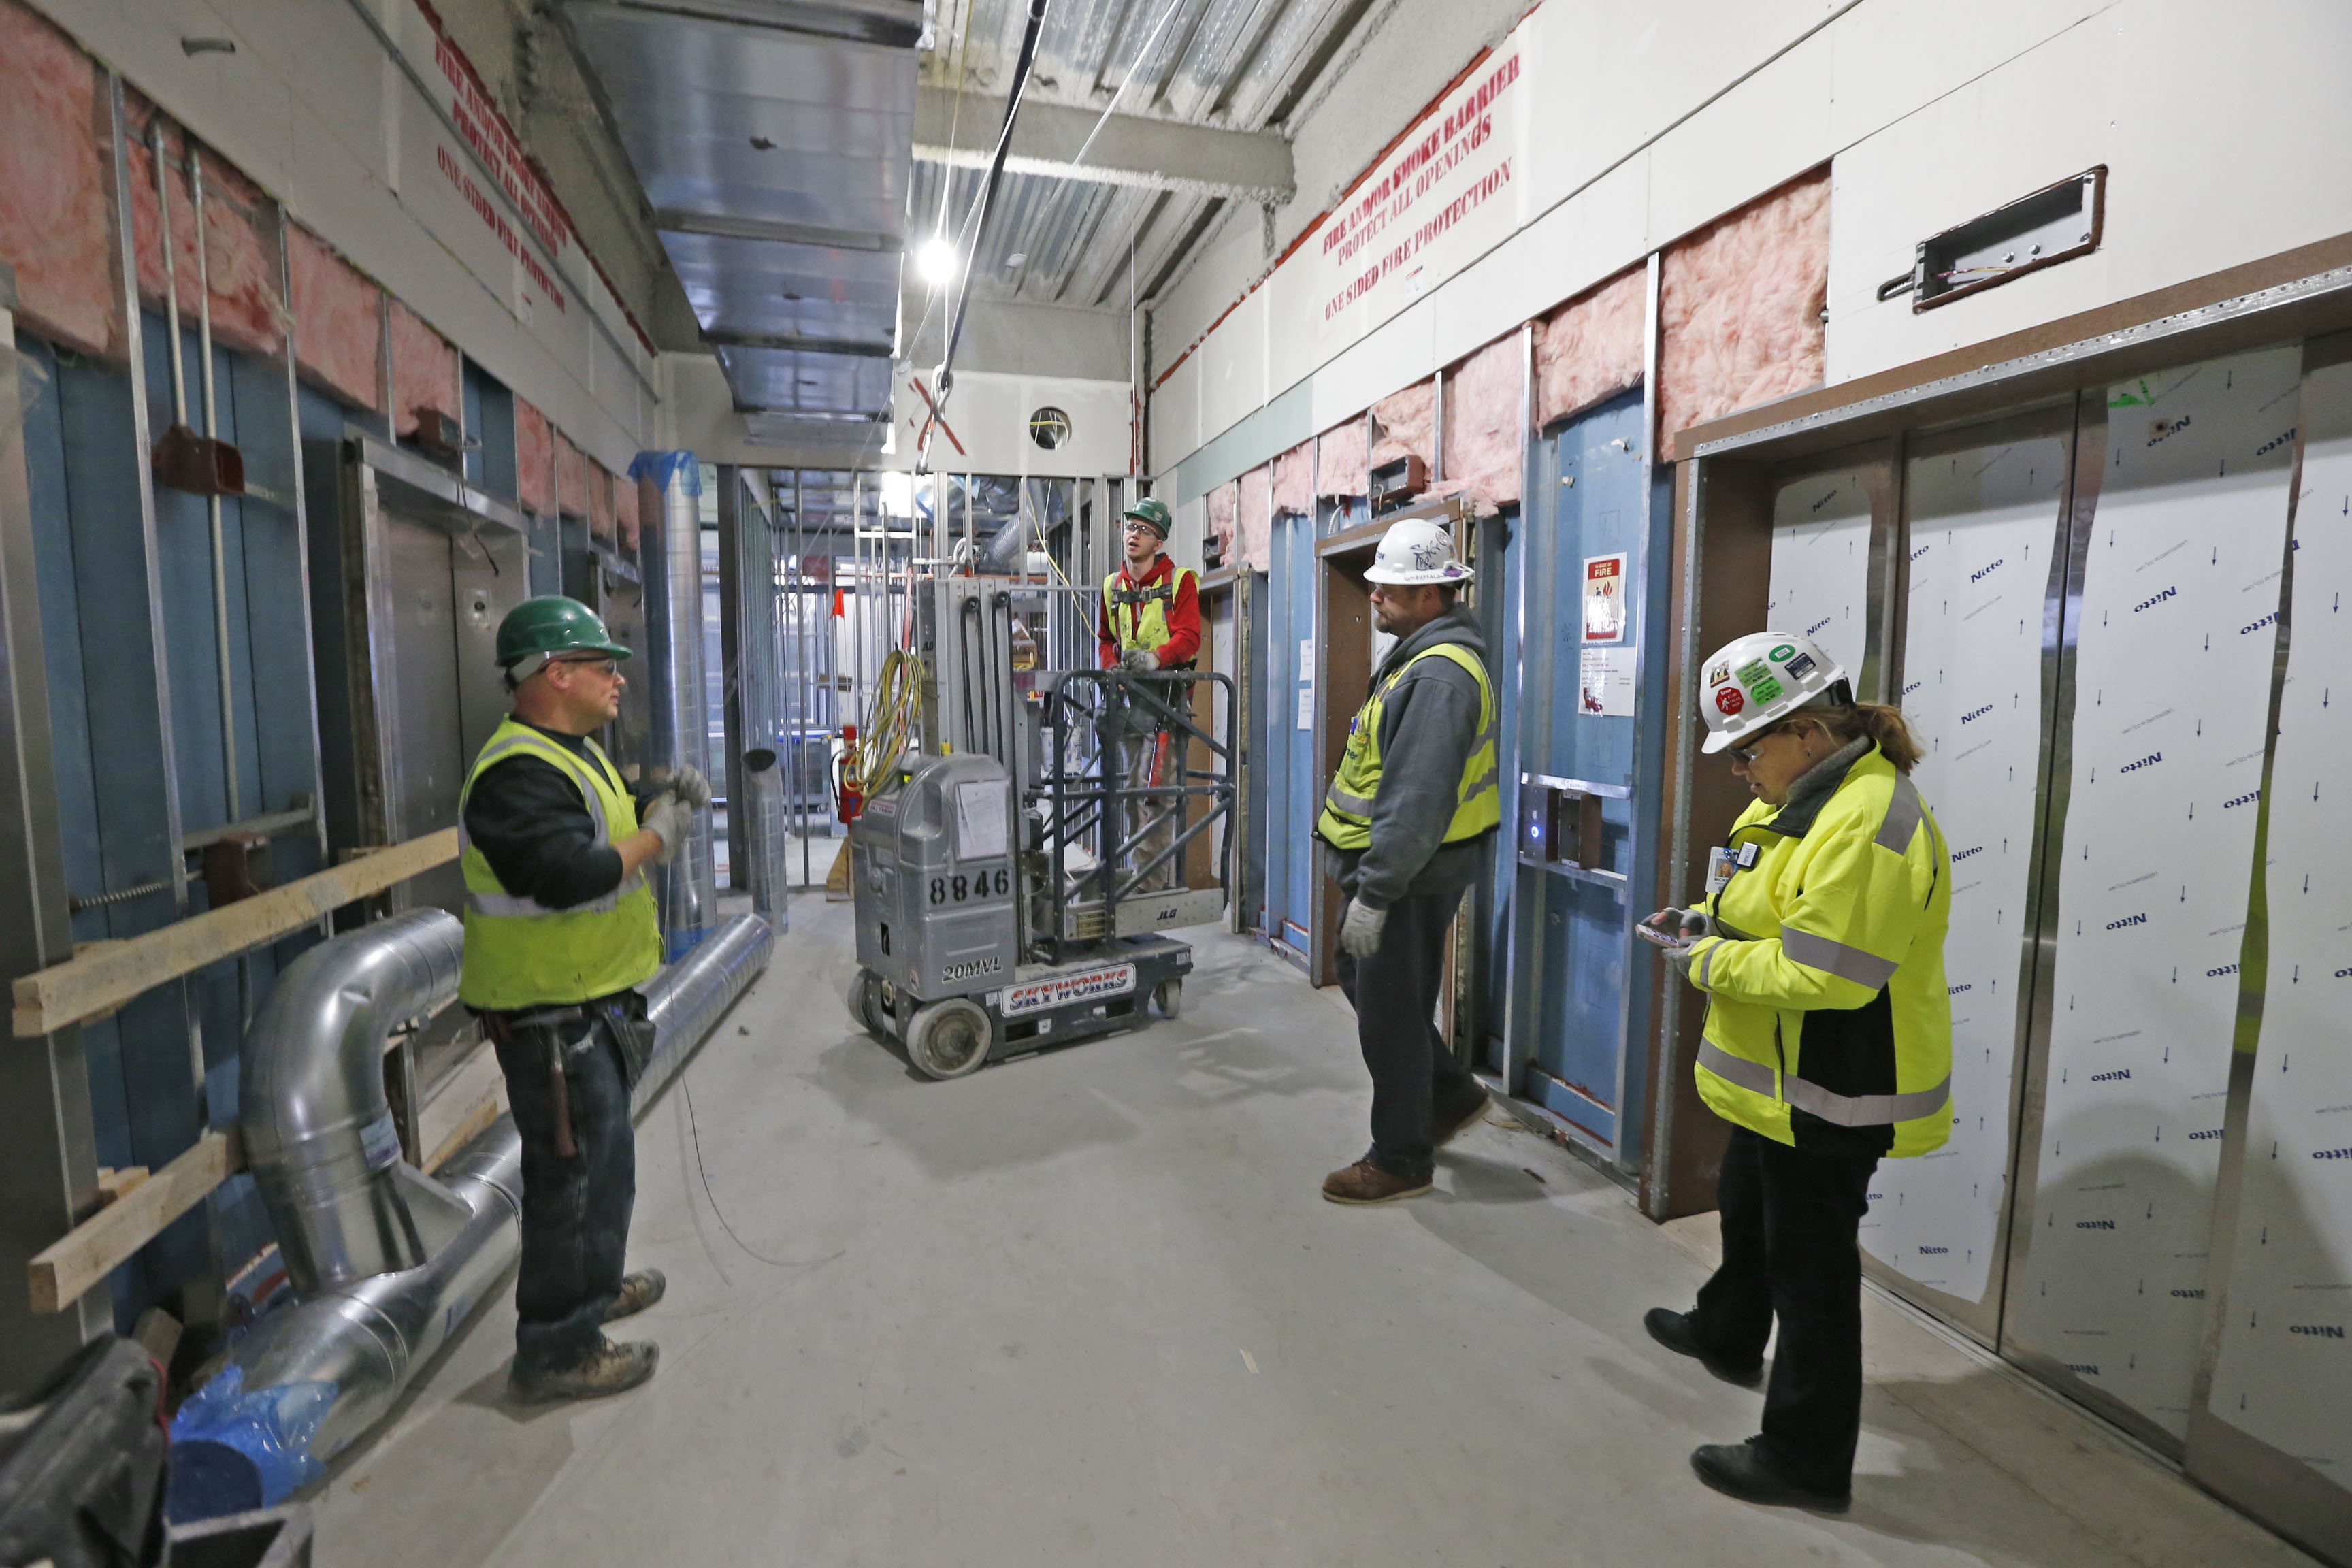 Workers wait in a hallway near the trauma elevators during the construction of the new John R. Oishei Children's Hospital in December.  (Robert Kirkham/Buffalo News file photo)